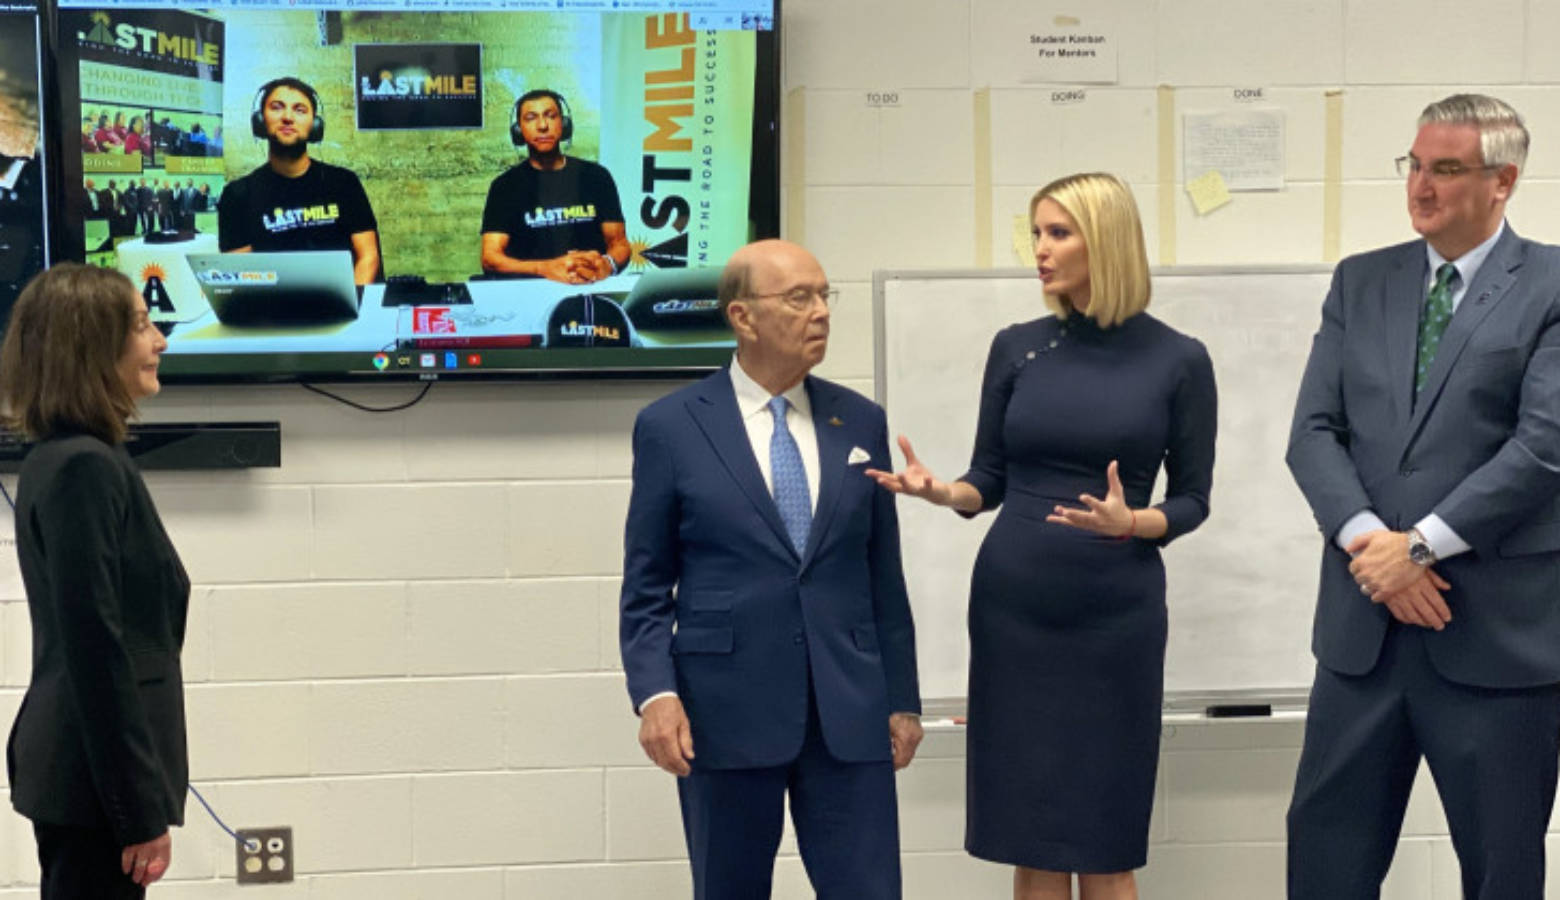 Adivisor to the President Ivanka Tump (second to the right) speaks with the Last Mile founder Beverly Parenti (far left). Trump is joined by Secretary of Commerce Wilbur Ross and Gov. Eric Holcomb (far right).